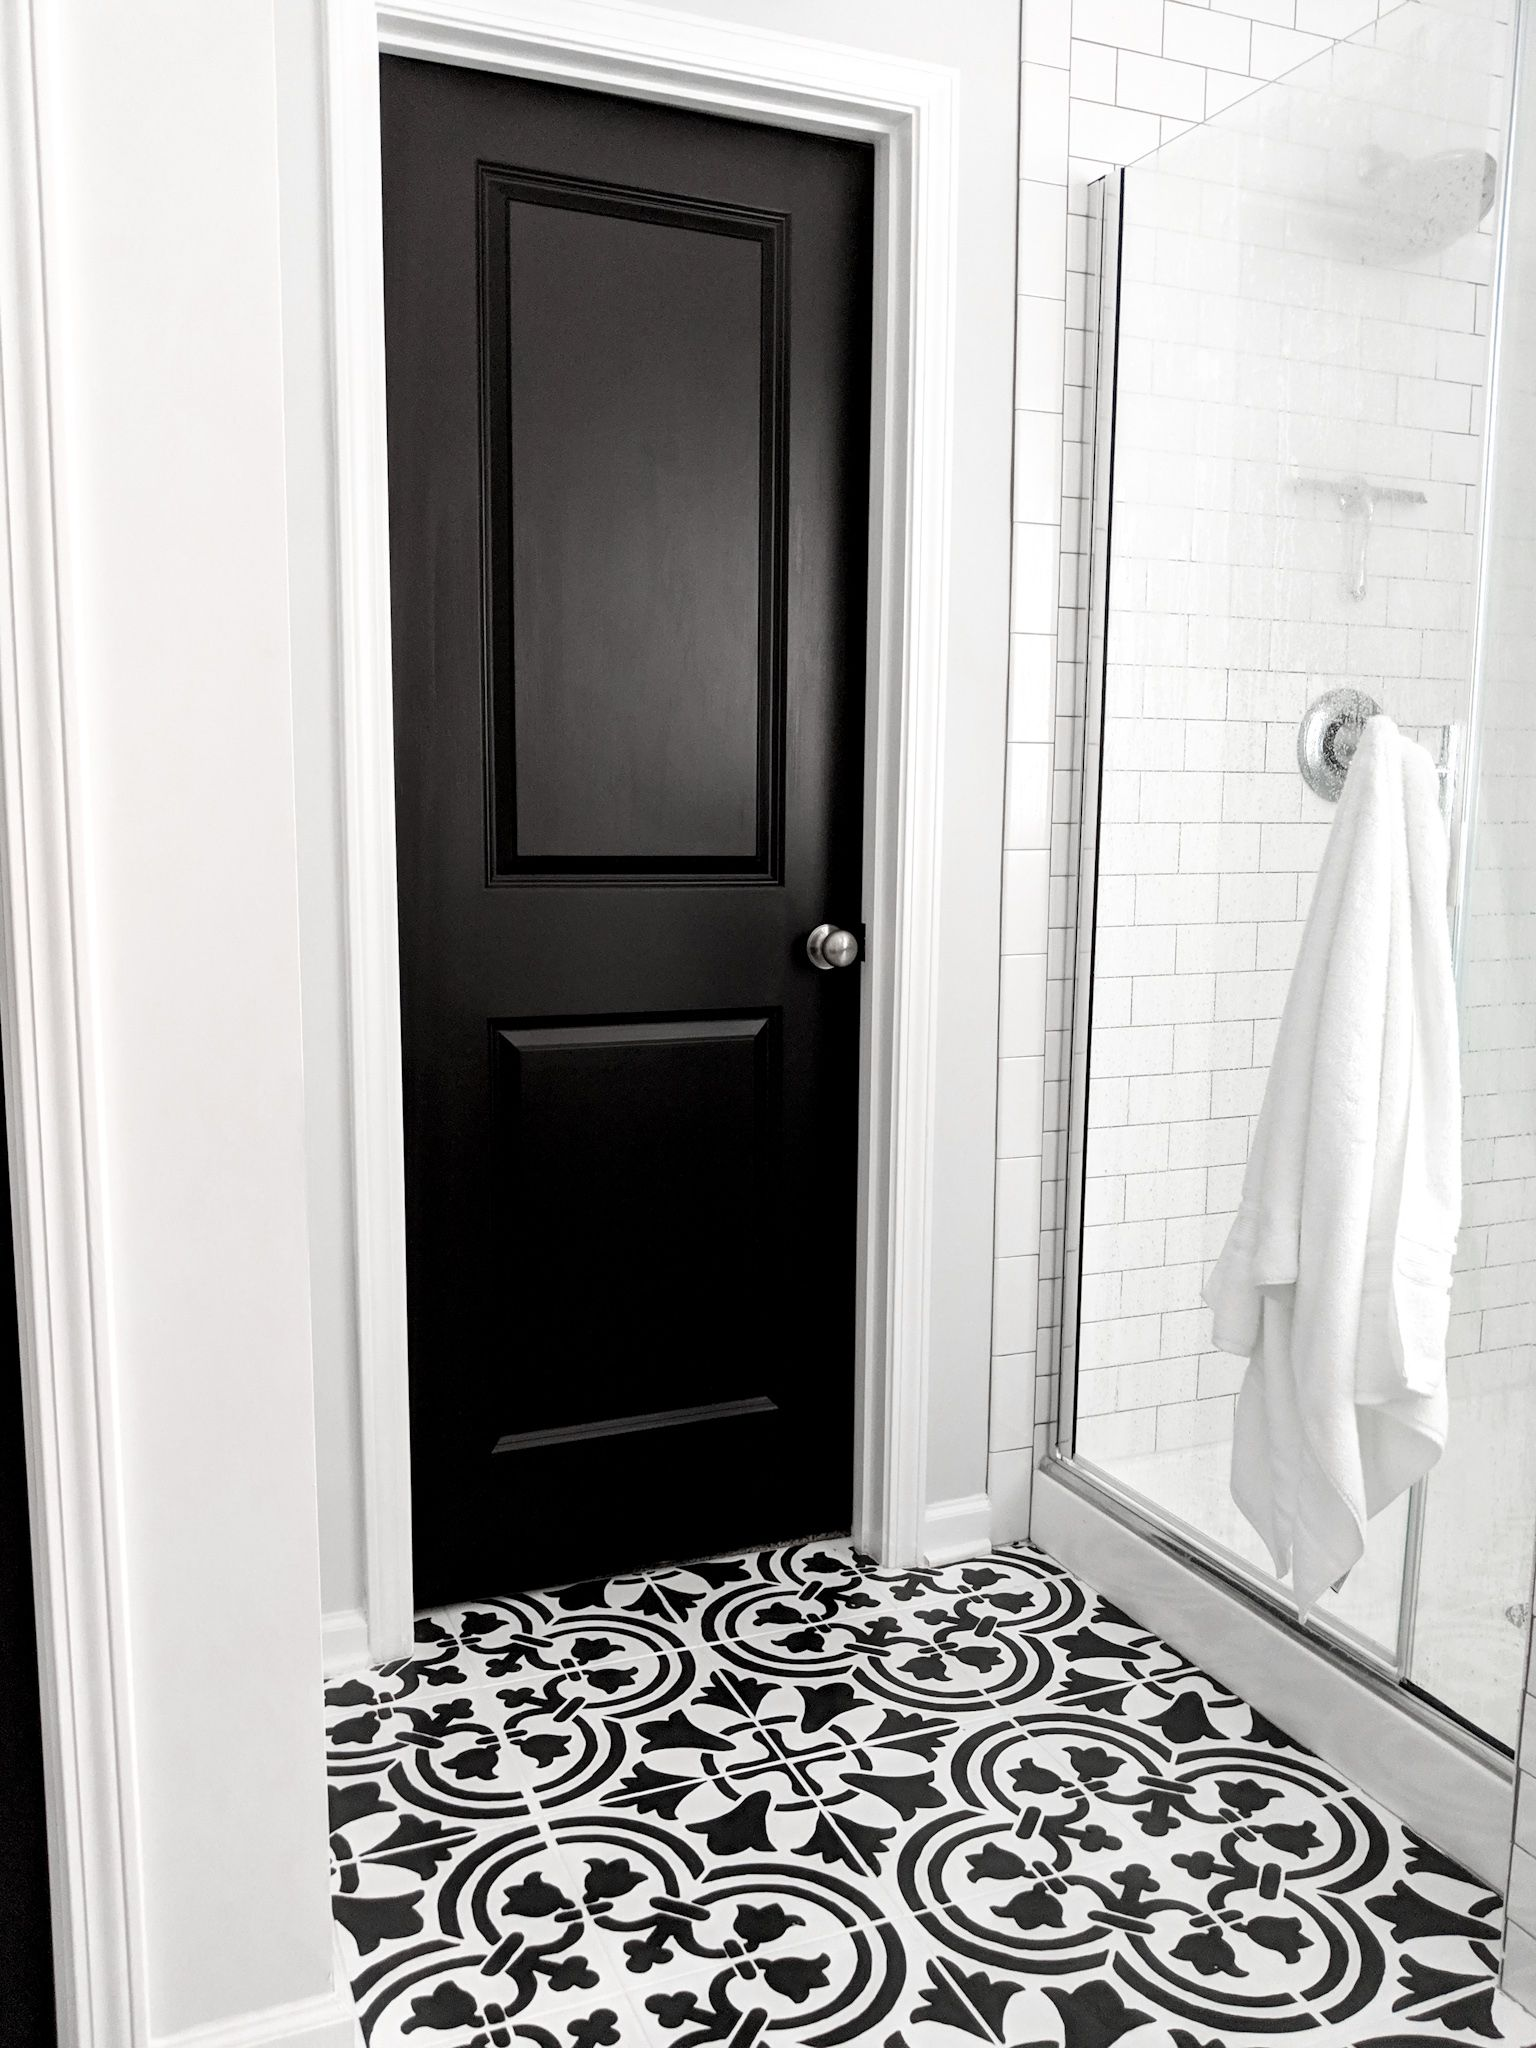 How To Paint Doors Like A Professional Without Taking Them Off The Hinges Painted Interior Doors Black Interior Doors Black Doors